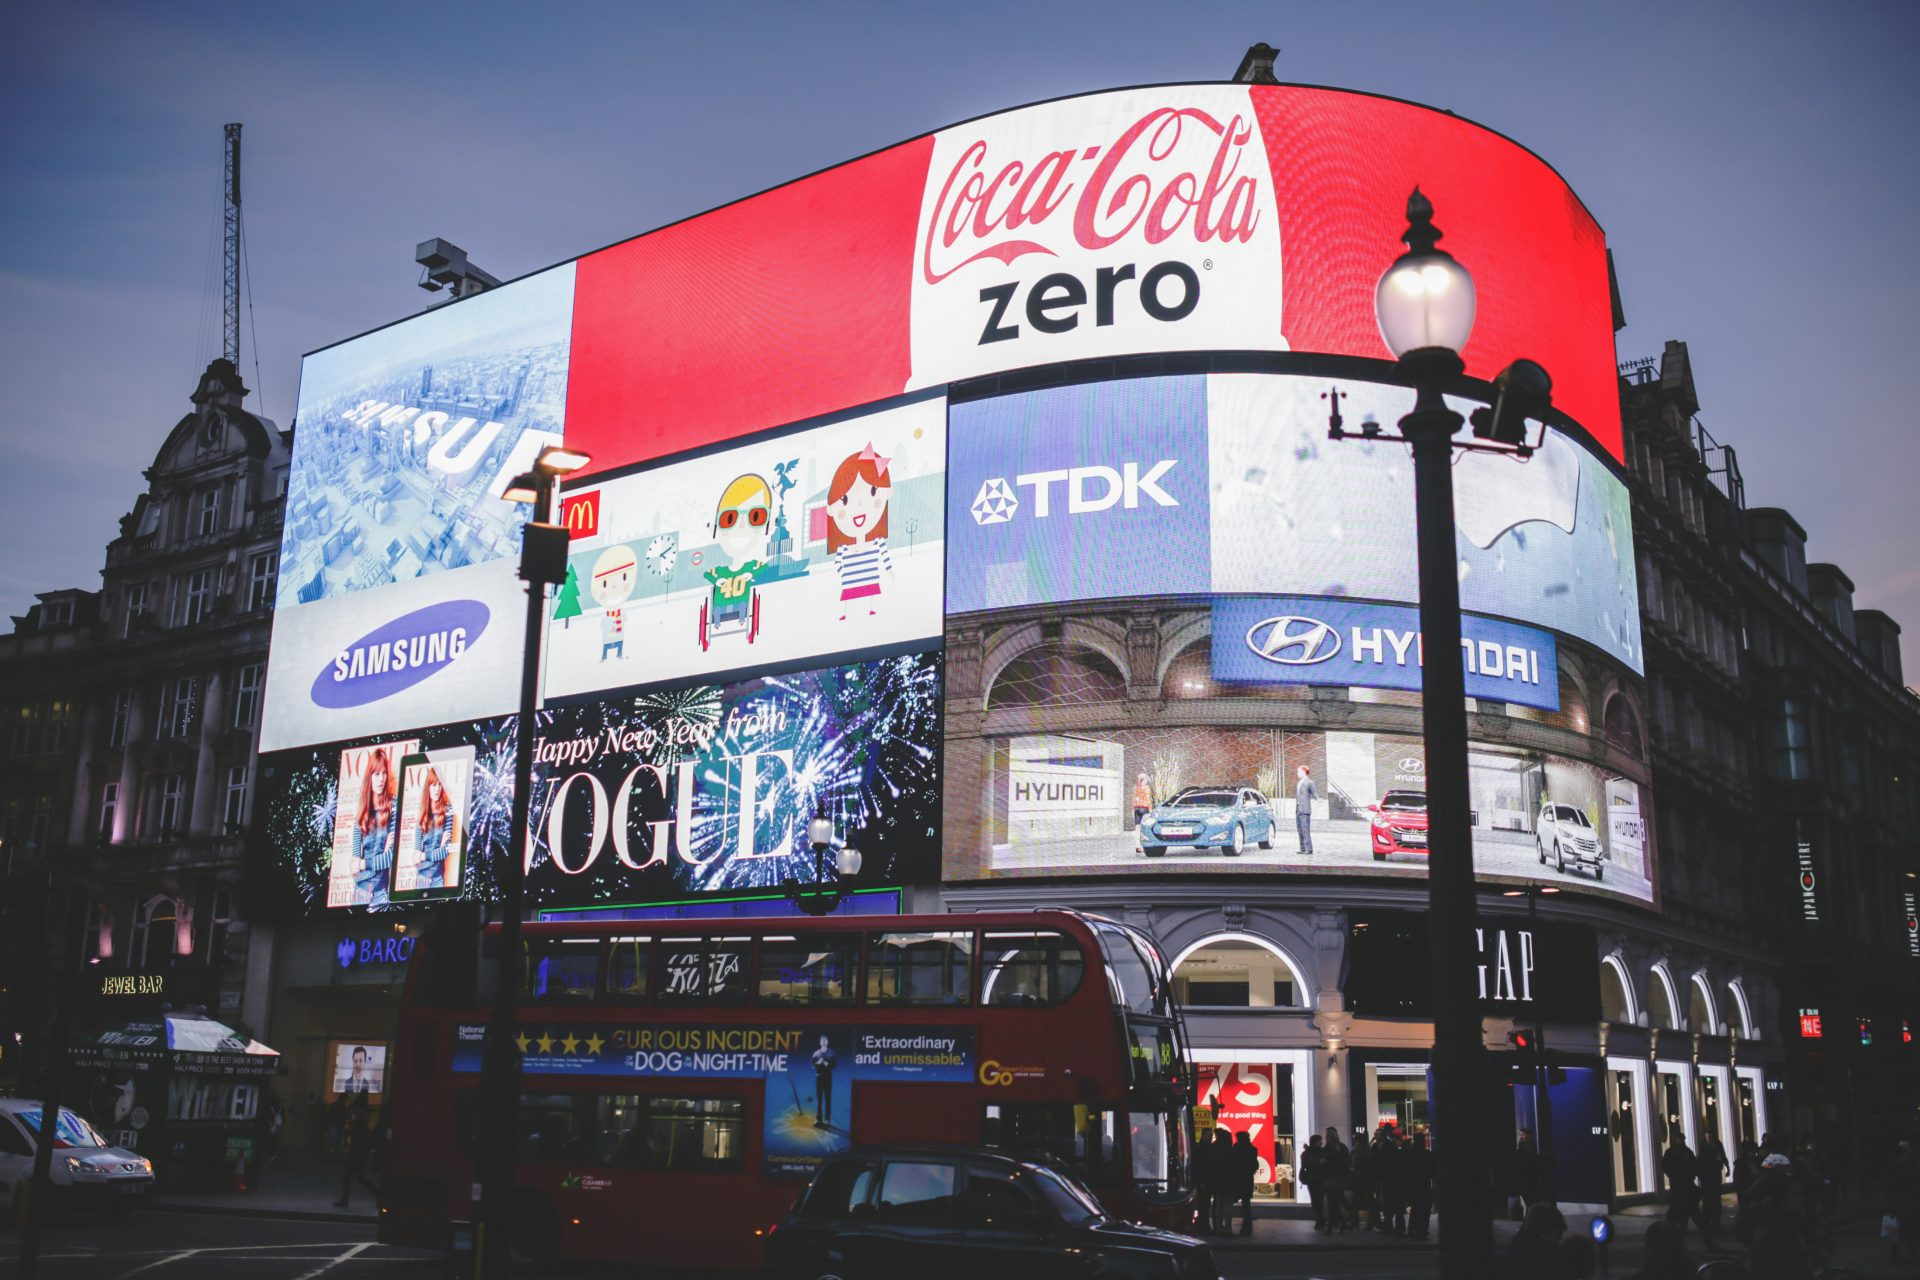 The Piccadilly Circus in London